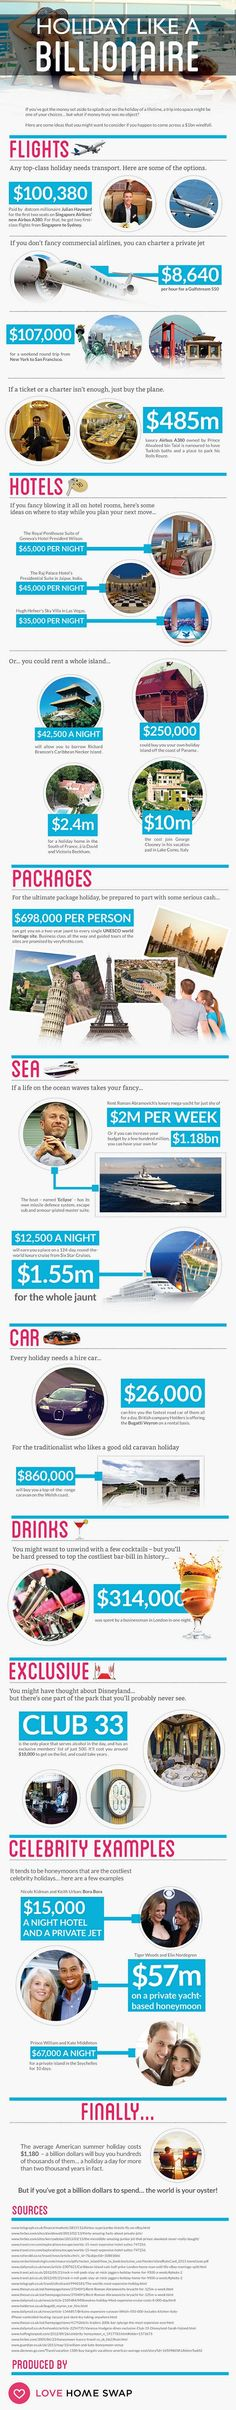 Learn how to spend like a billionaire by reading our fun infographic.